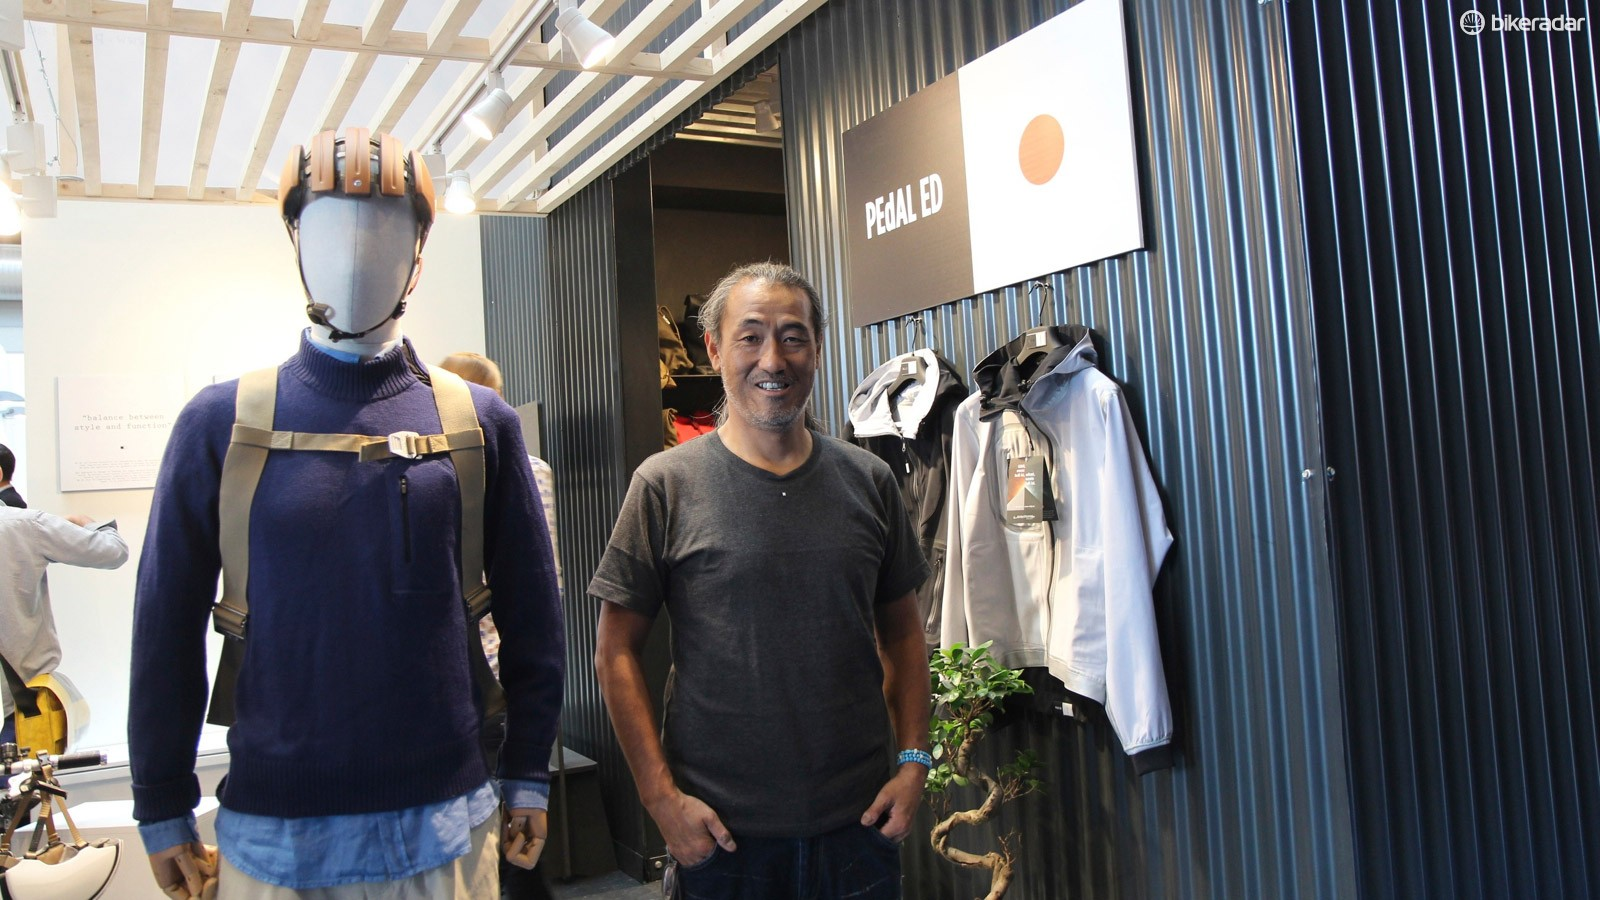 Pedal ED's founder and designer Hideto Suzuki launched the company after 15 years in the Japanese fashion industry